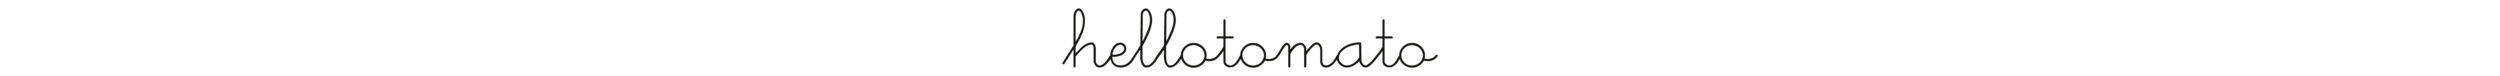 hellotomato logo footer home page.png